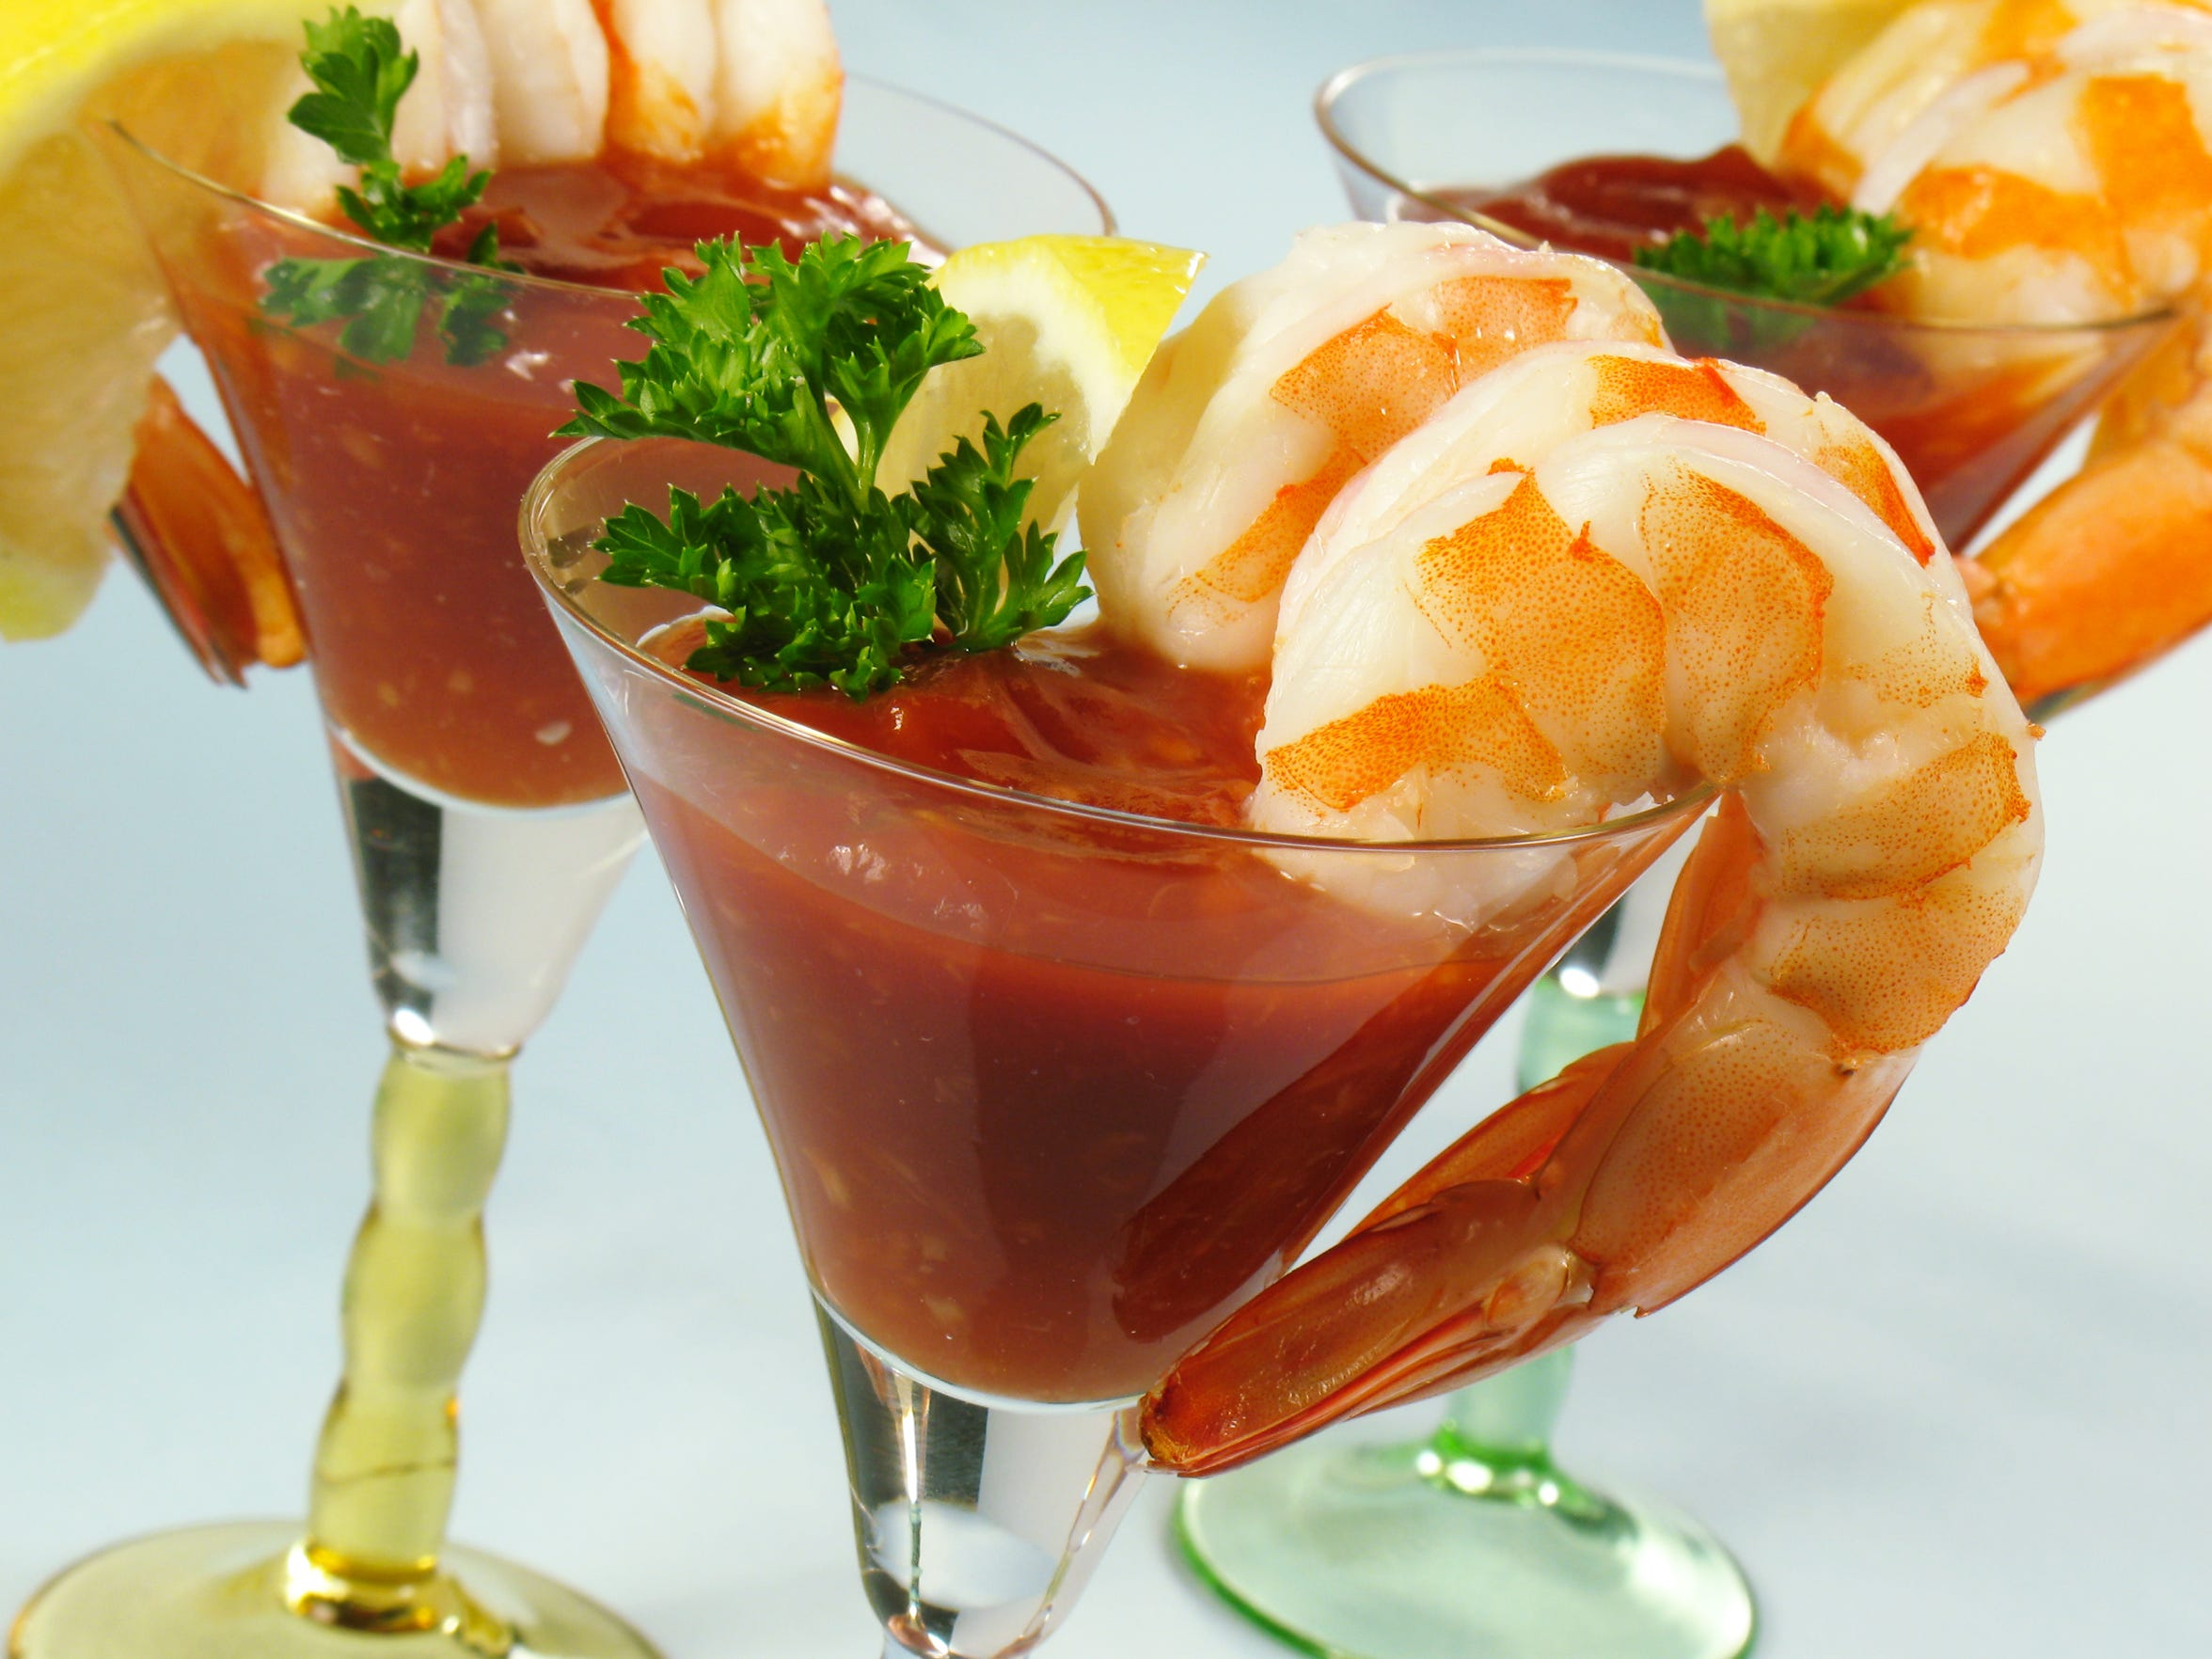 Shrimp cocktail, a classic 1960s dish, begins the 60s-inspired VIP dinner at the 2018 Fantasies in Chocolate charity gala running Nov. 17 at Grand Sierra casino.